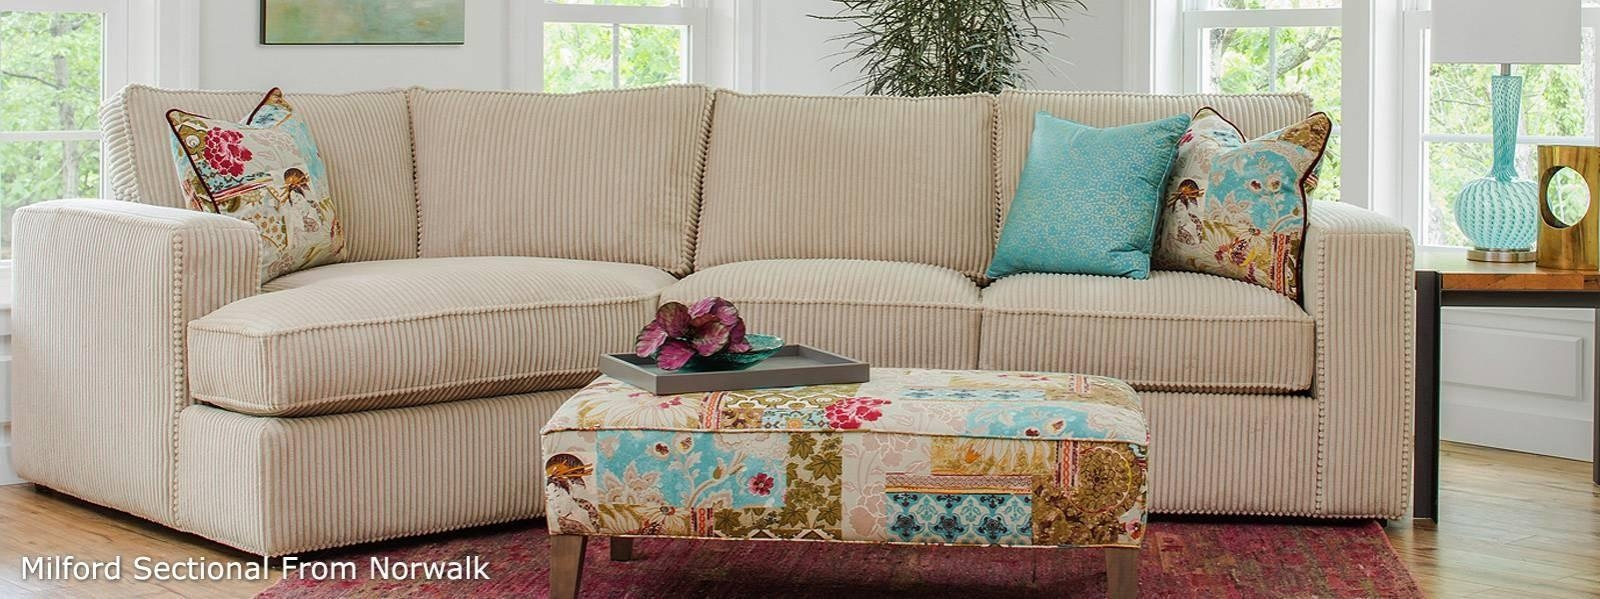 Furniture Home : Lounge Chairs Single Sofa Chairs Modern Elegant Pertaining To Elegant Sofas And Chairs (Image 16 of 20)